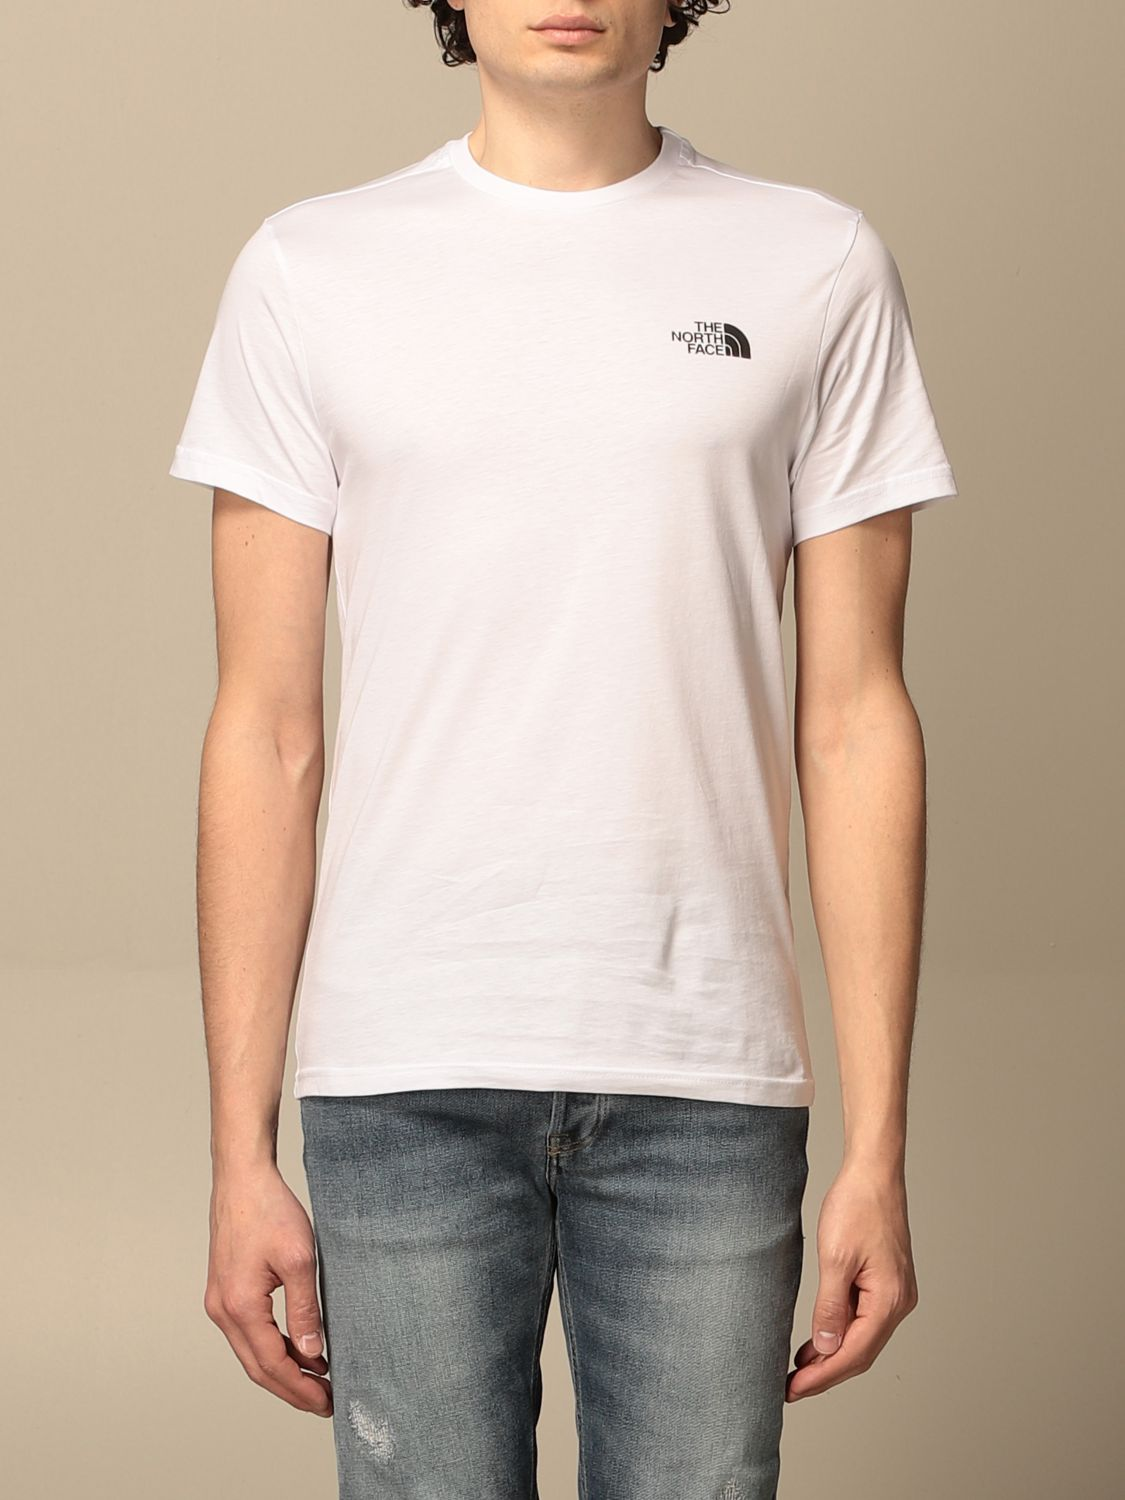 T-shirt The North Face: T-shirt men The North Face white 1